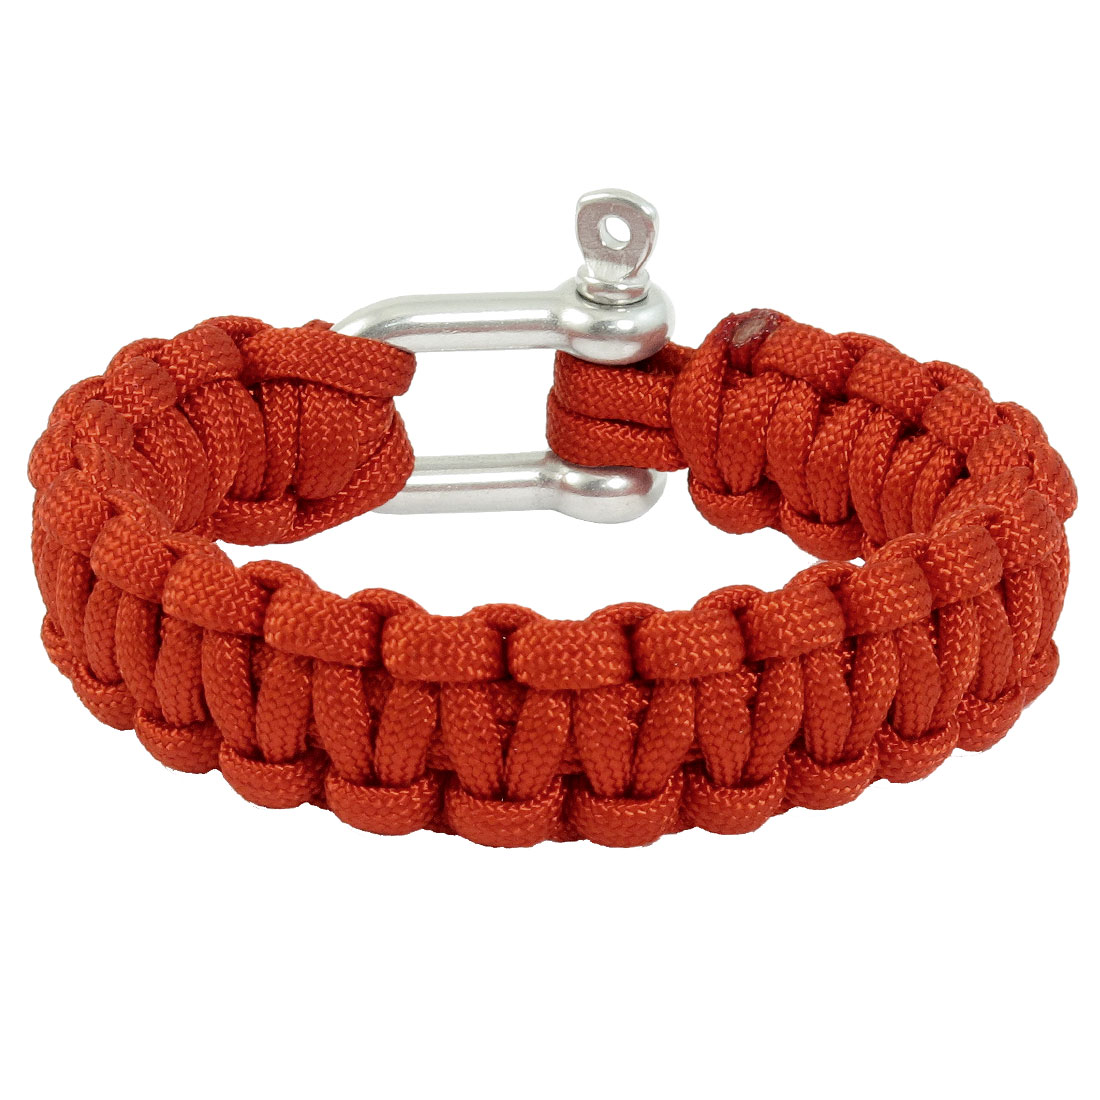 Outdoor Stainless Steel Shackle Cobra Weave Survival Bracelet Red